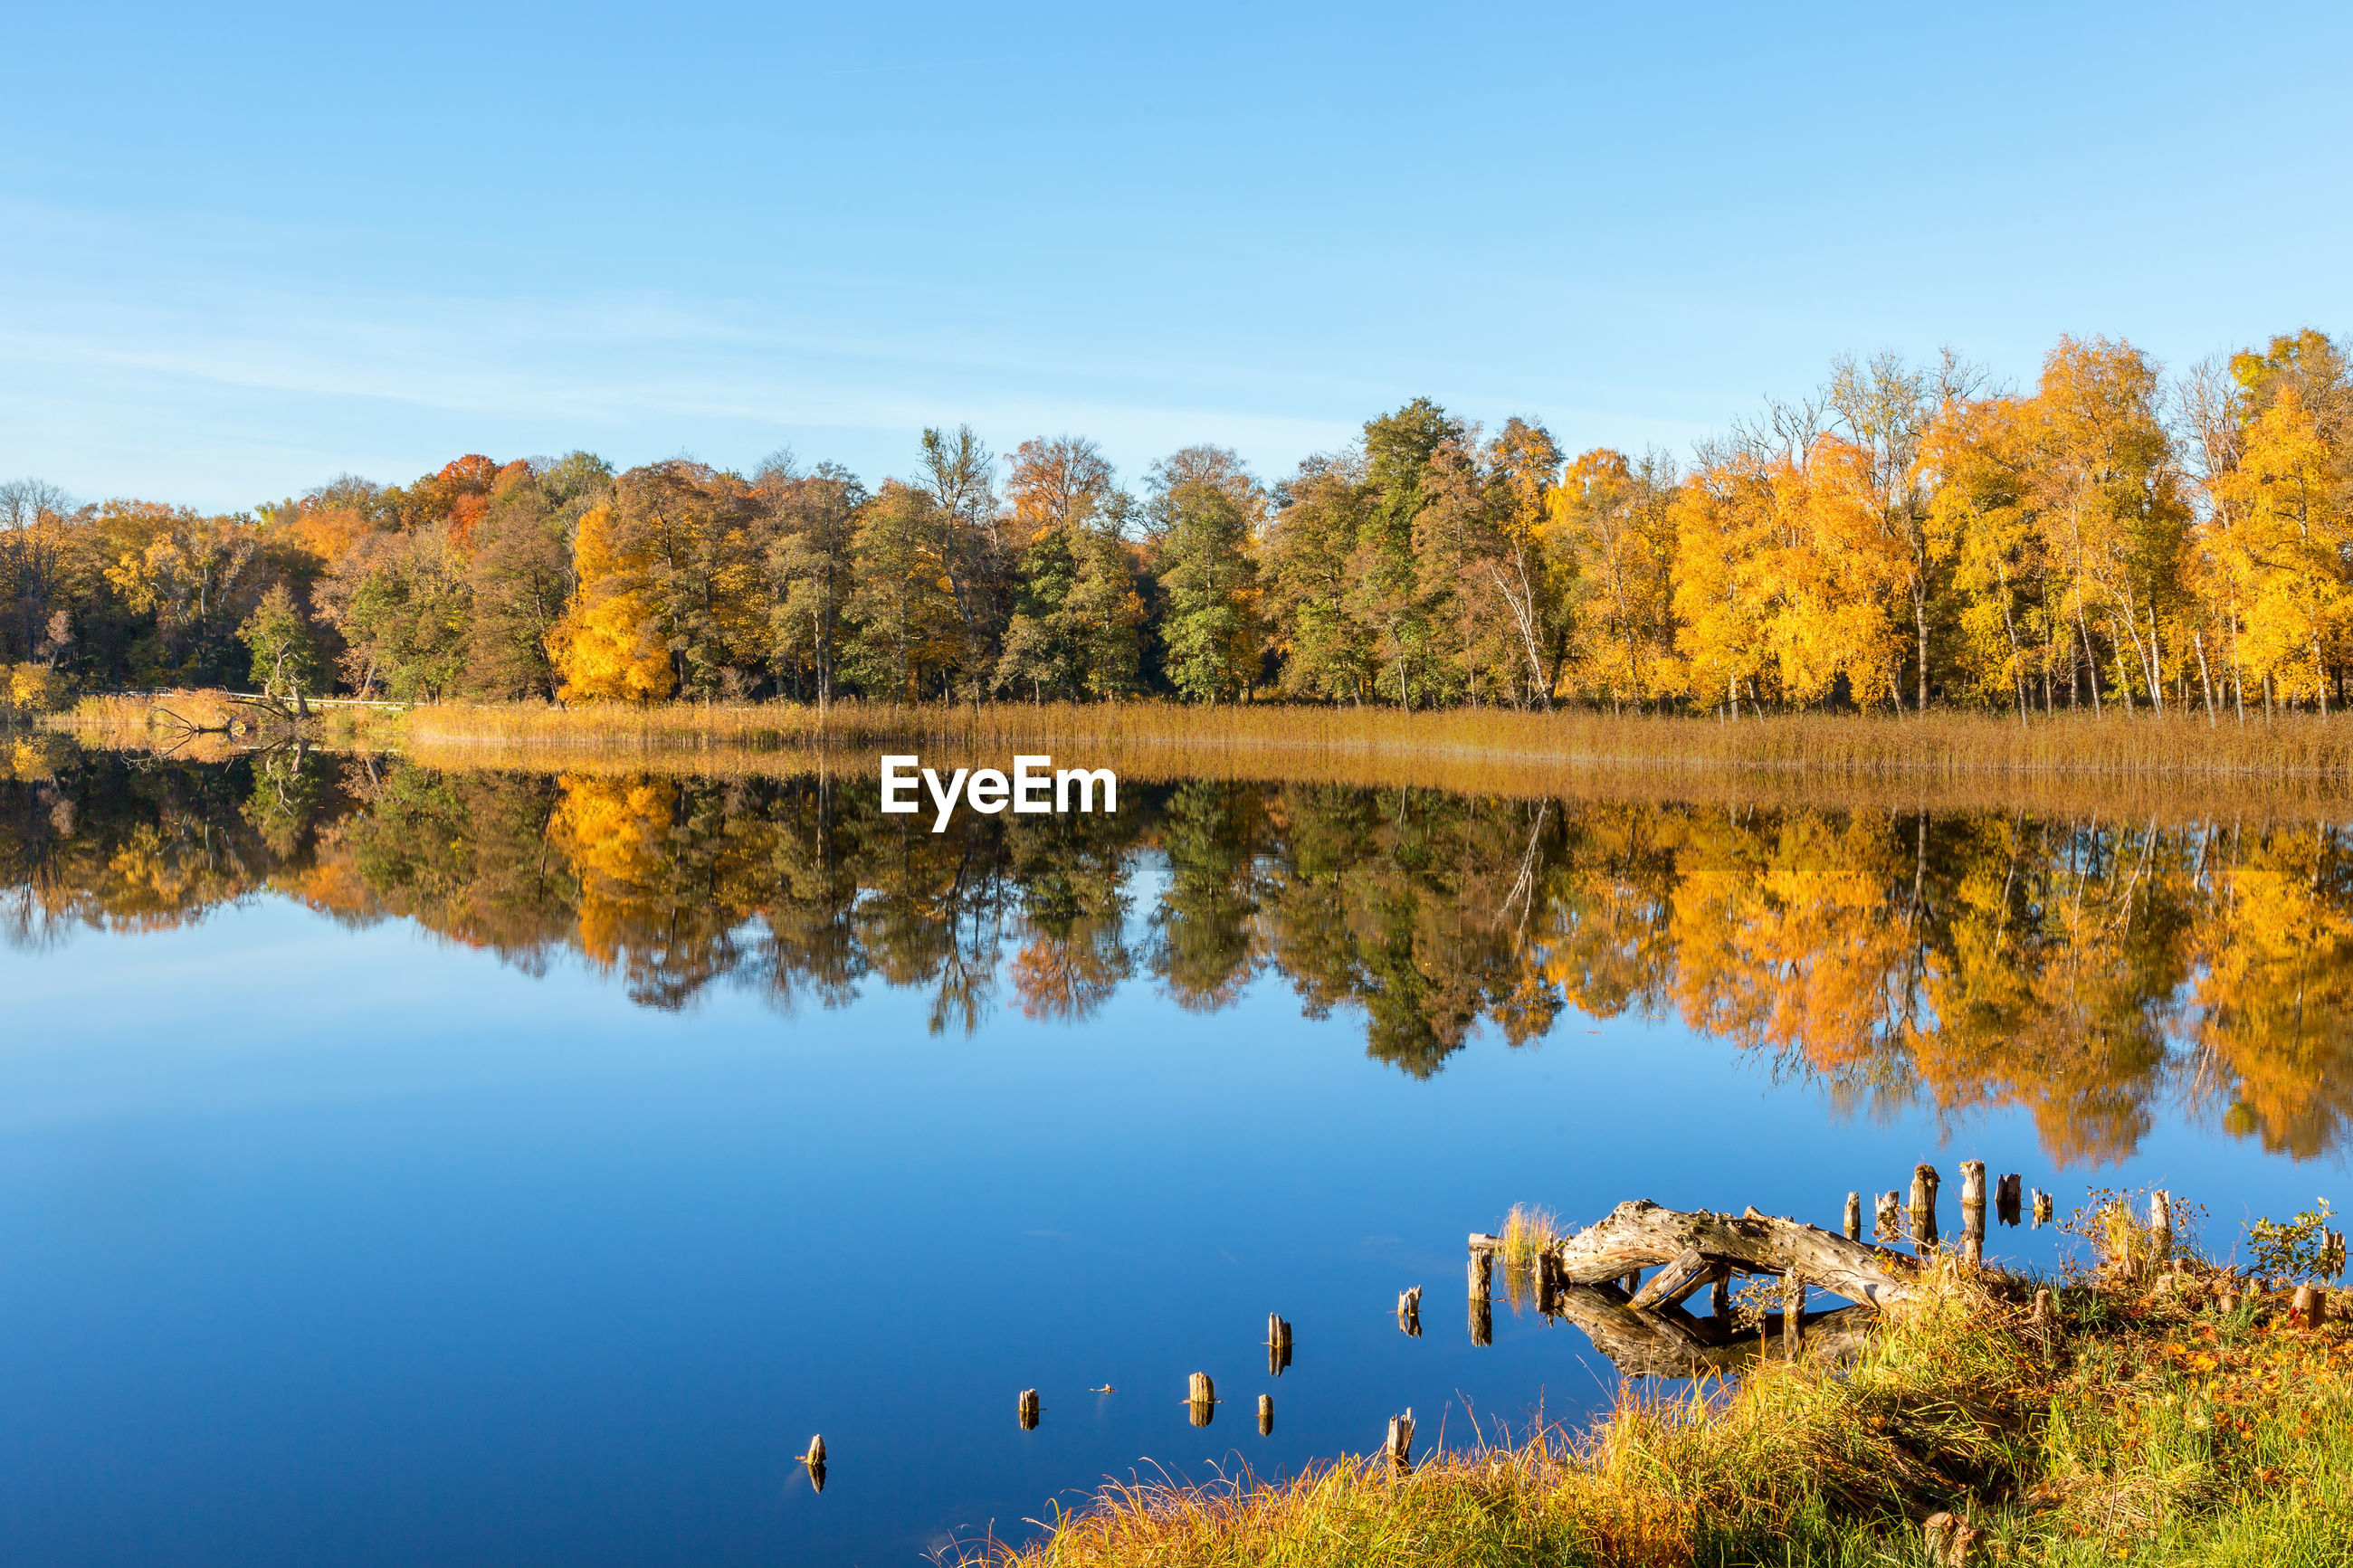 SCENIC VIEW OF LAKE DURING AUTUMN AGAINST SKY